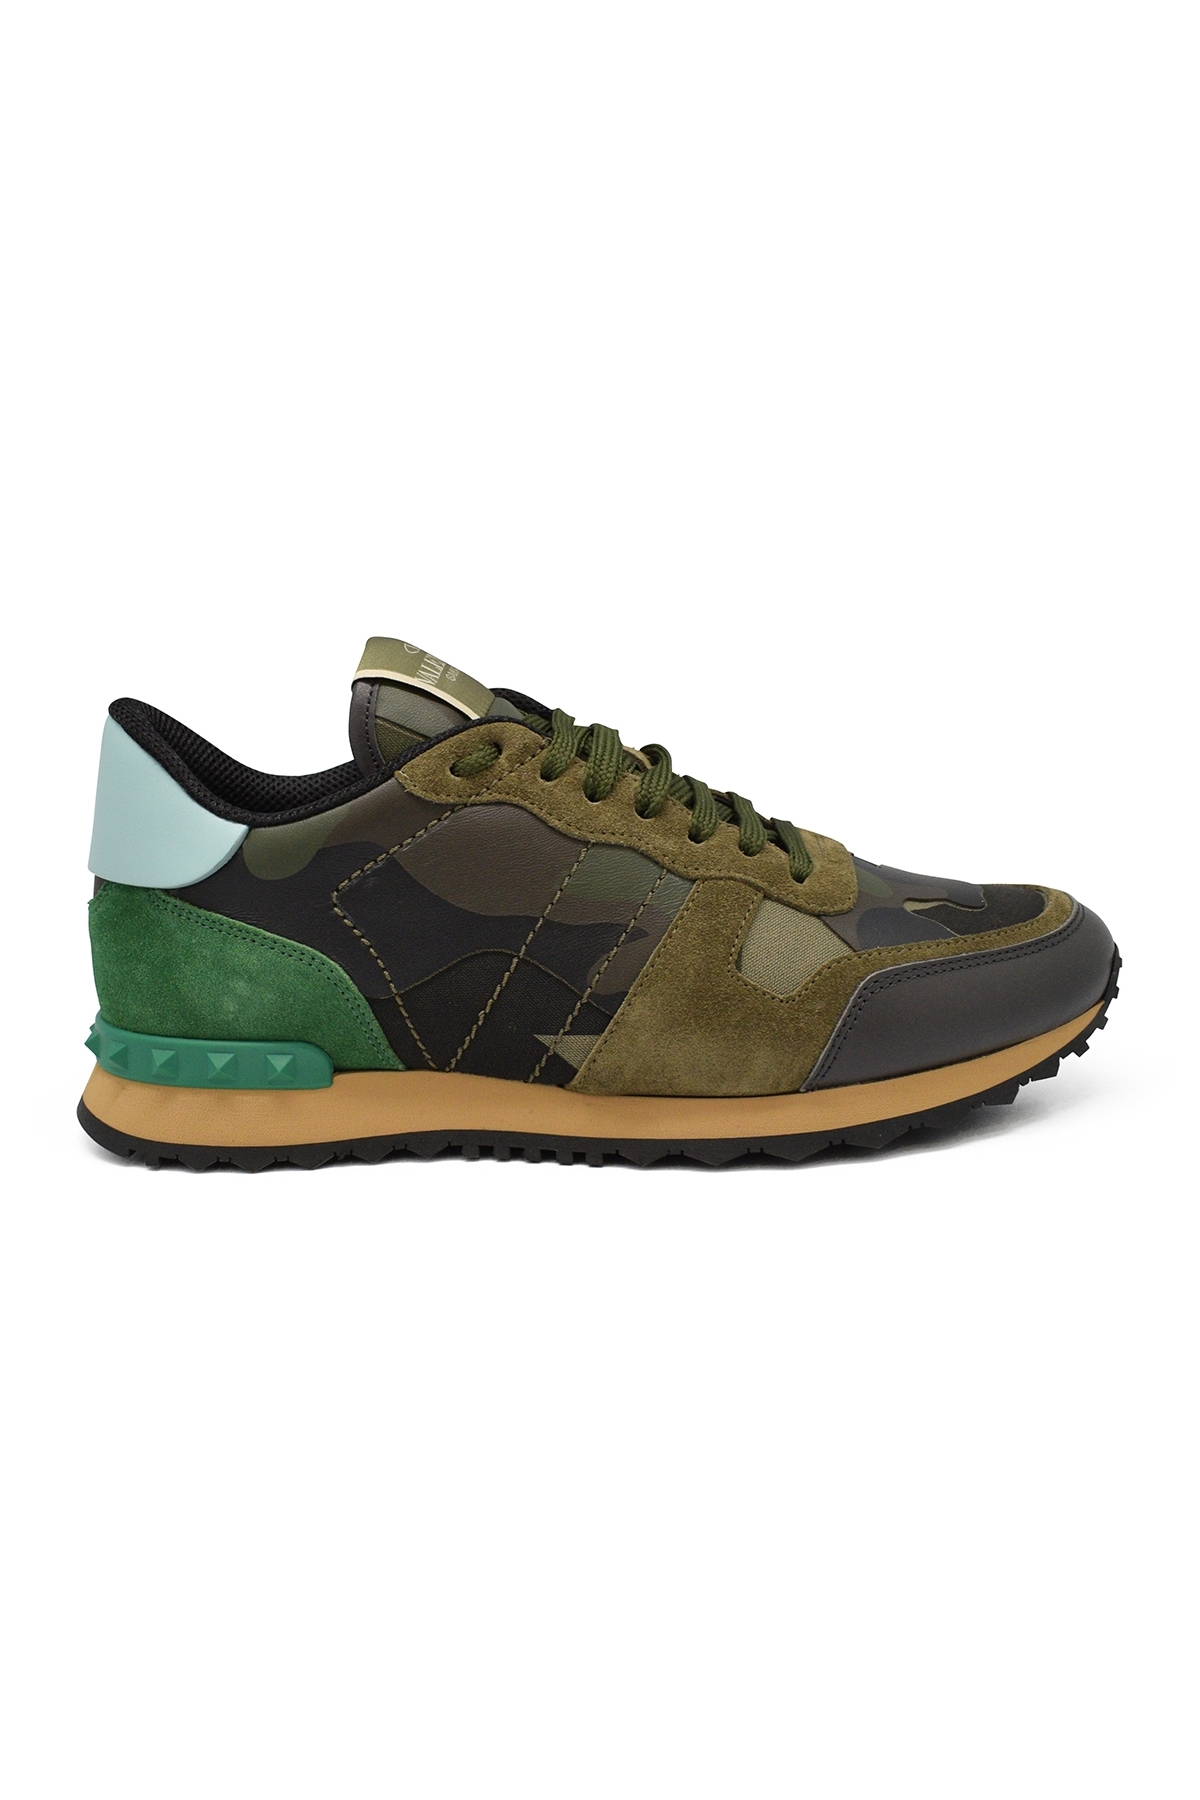 Valentino Rockrunner camouflage sneakers in kaki and green fabric and nappa